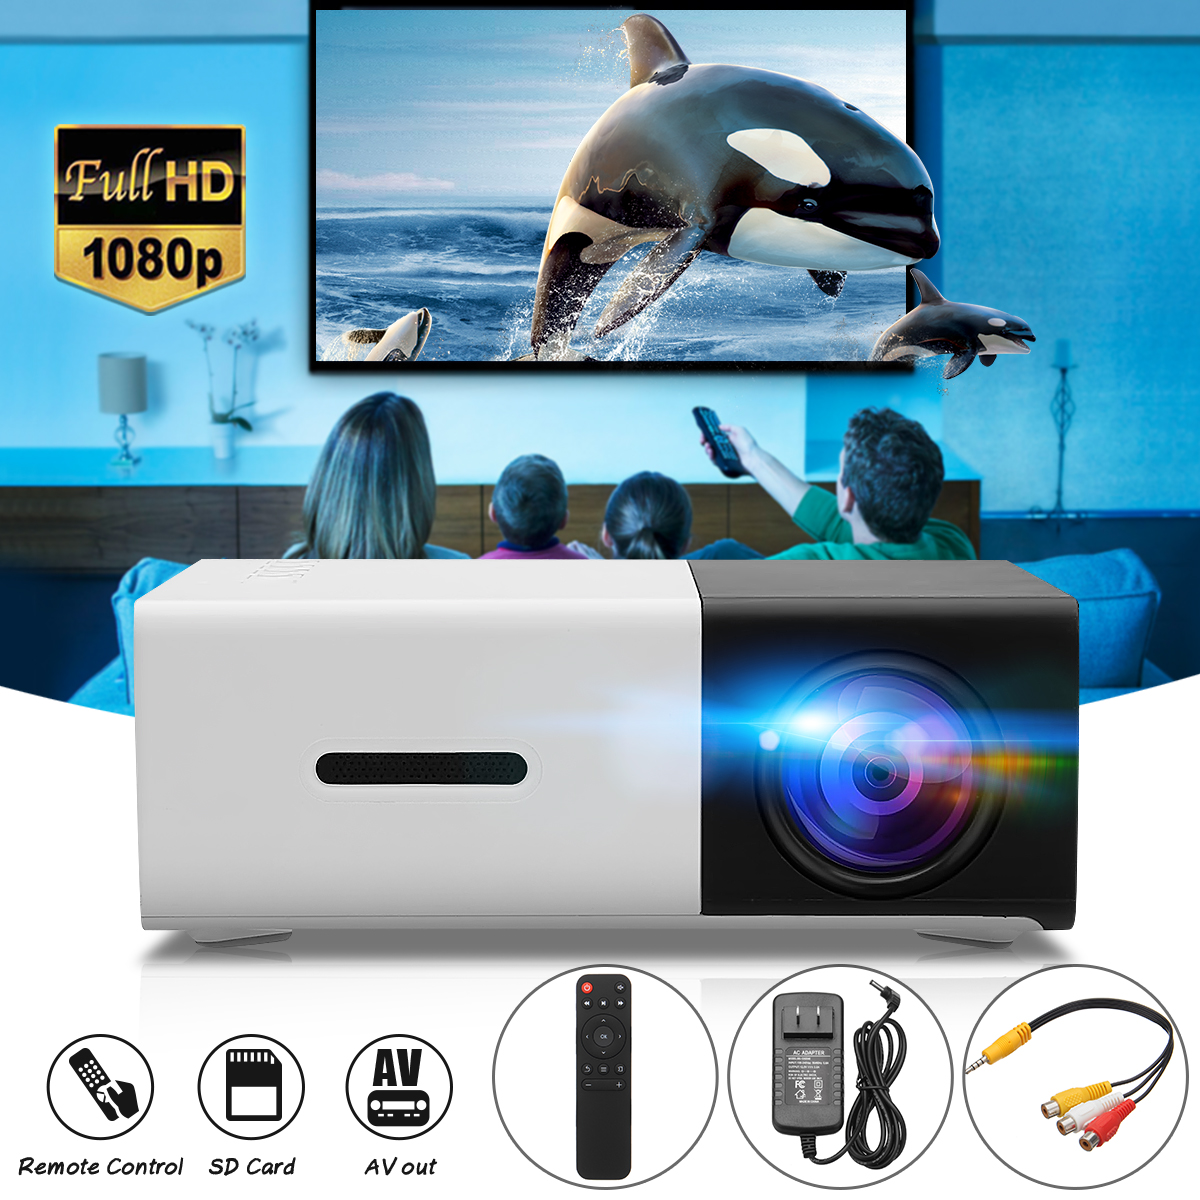 YG-300 LCD LED Projector 400-600 Lumens 320 x 240 Pixels 1080P Home Media Player With Remote Control